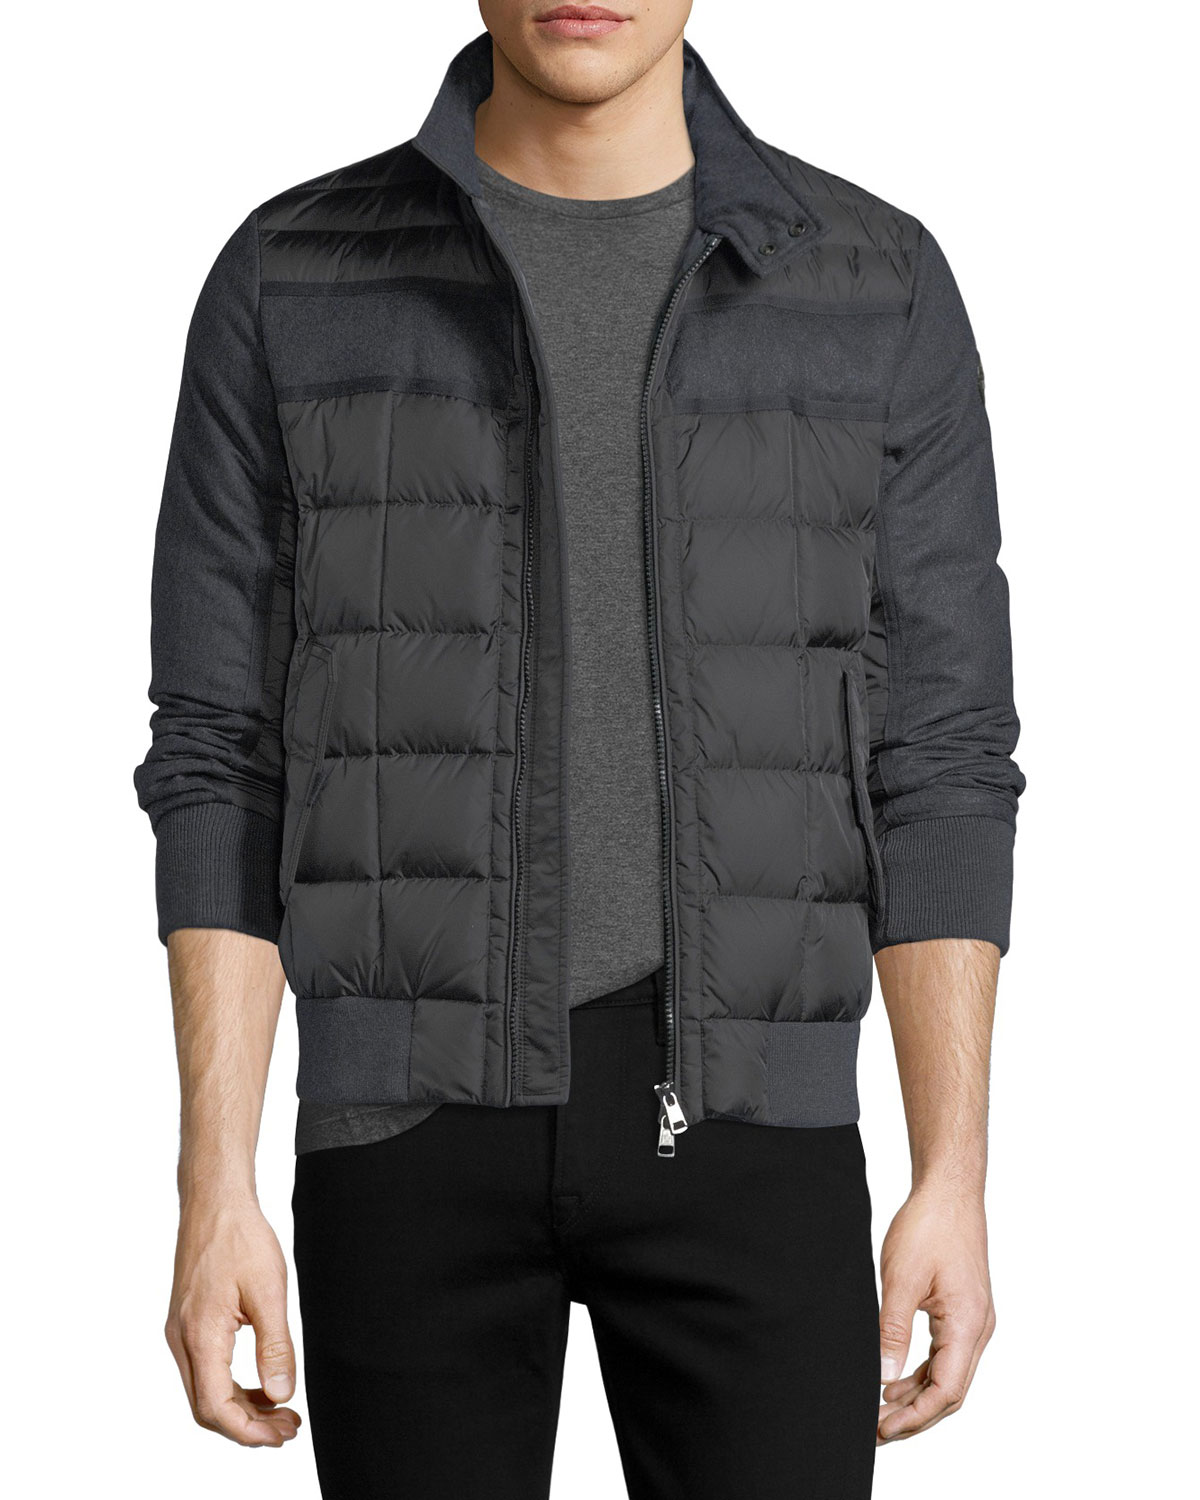 moncler mens vest on sale